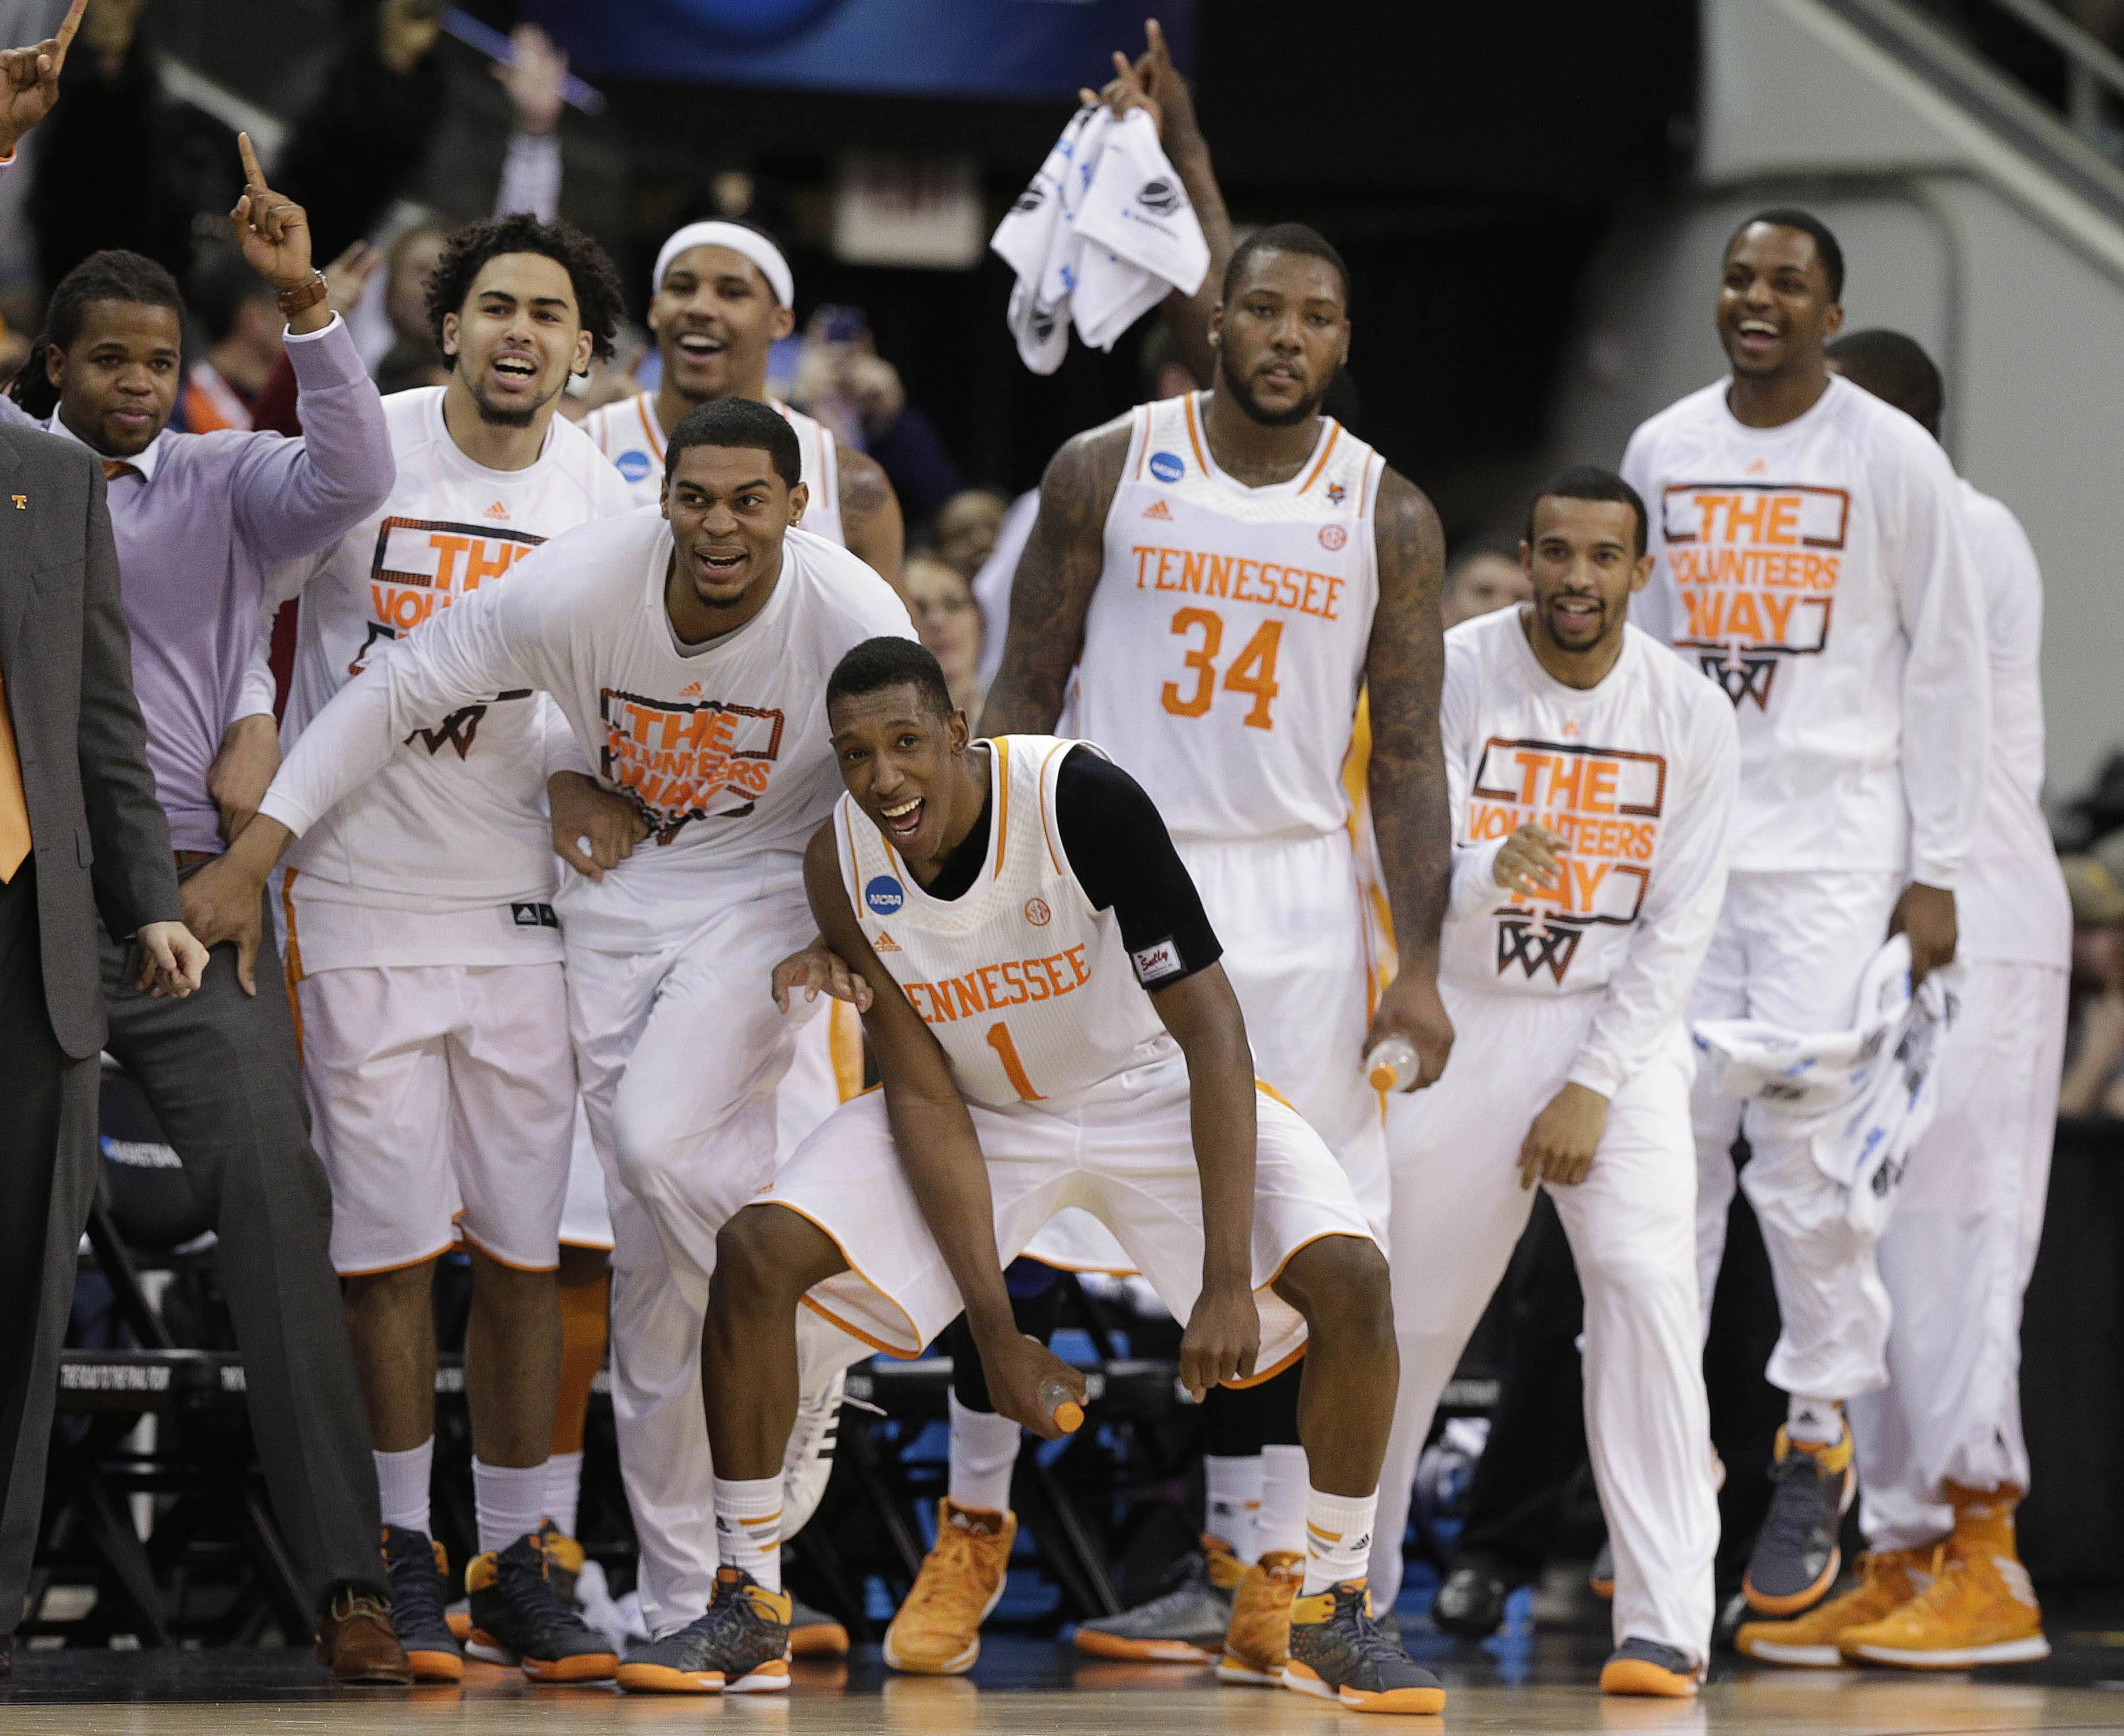 Tennessee players celebrate near the end of the second half of an NCAA college basketball third-round tournament game against Mercer, Sunday, March 23, 2014, in Raleigh. Tennessee Won 83-63.